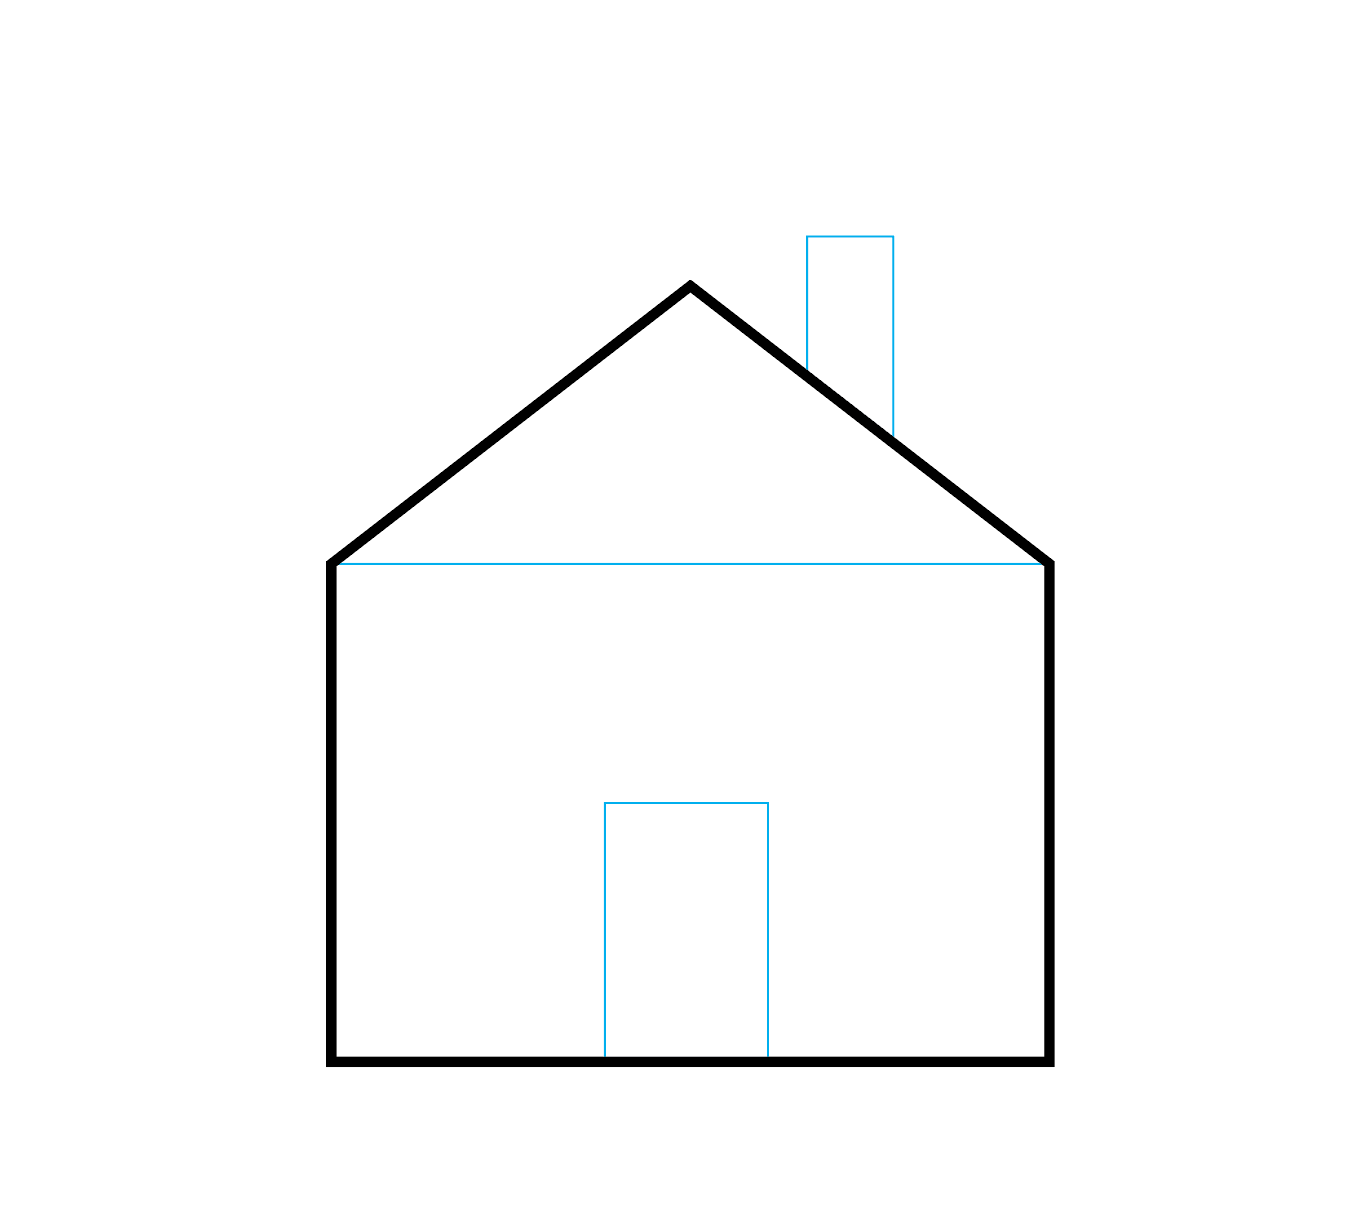 I see a house in this shape you are drawing. Hmmm, maybe this could get annoying